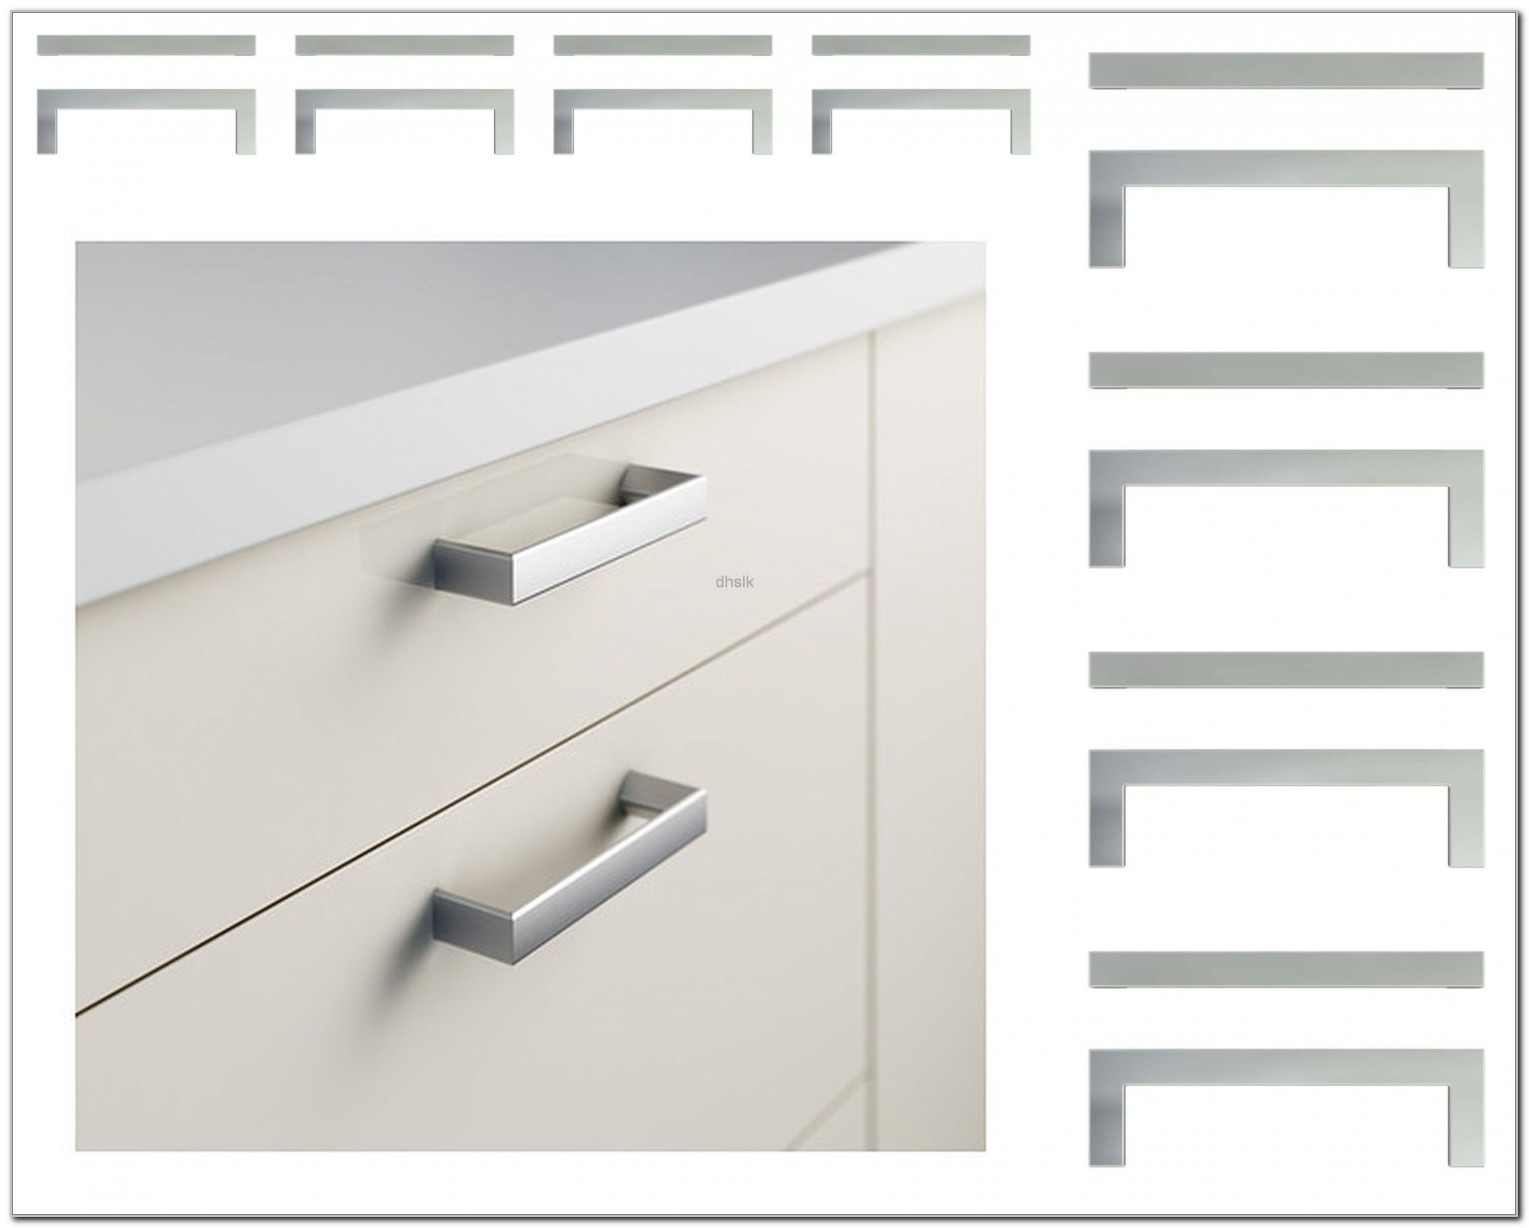 Ikea Stainless Steel Cabinet Pulls